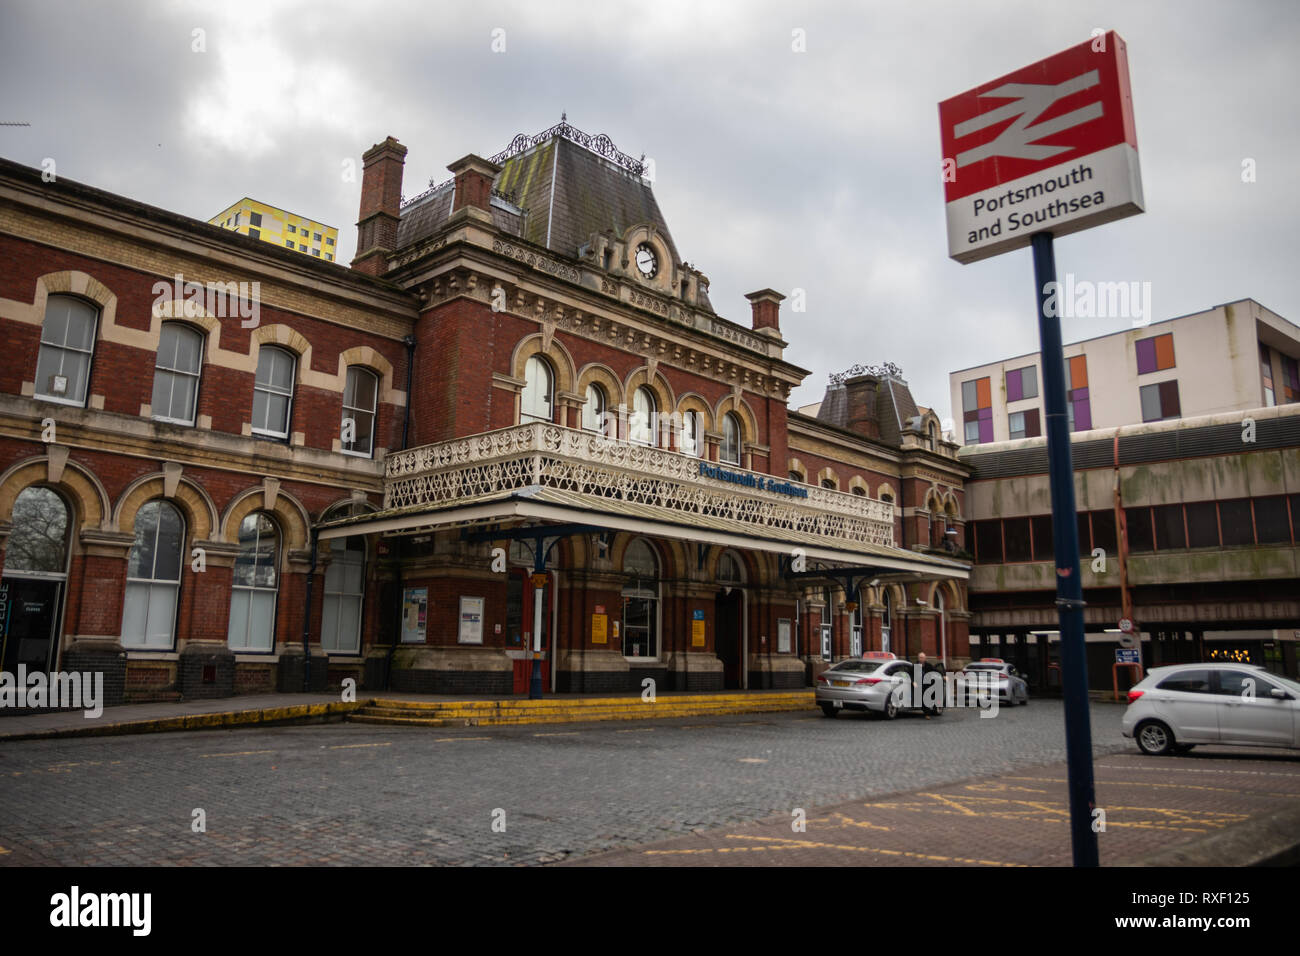 Portsmouth and Southsea train station front - Stock Image